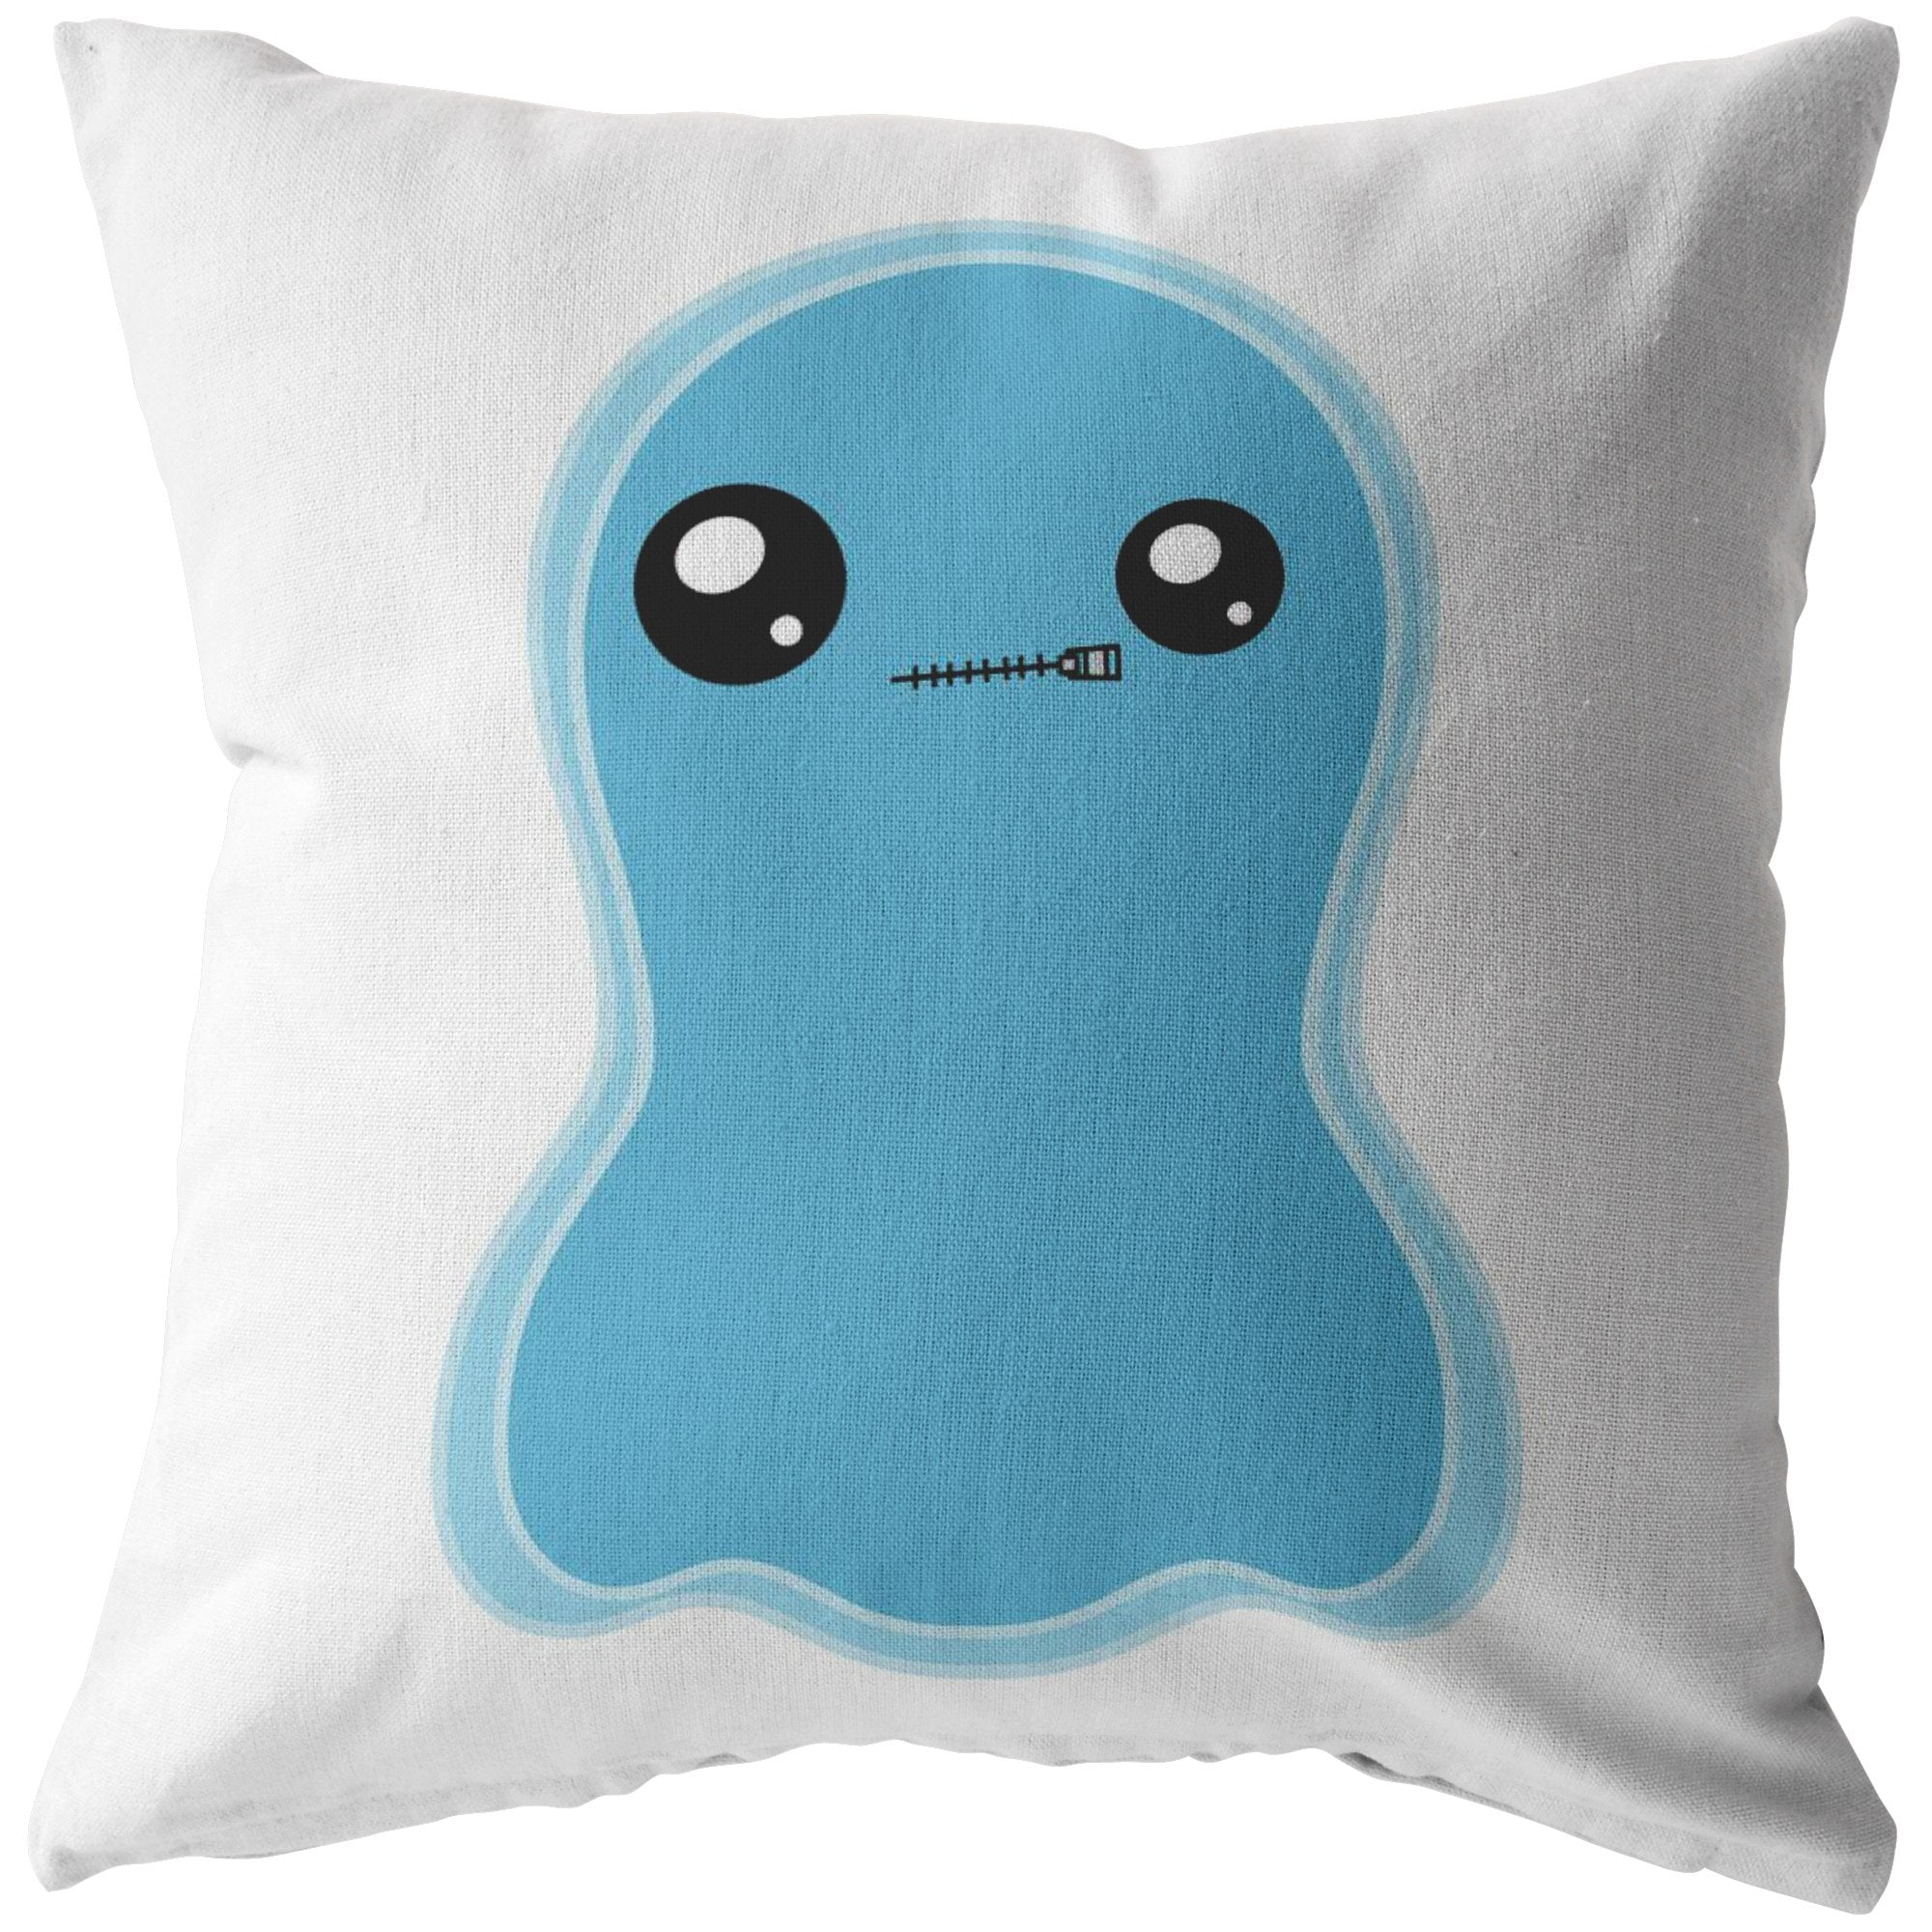 Isa the Selective Mutism Monster Pillow